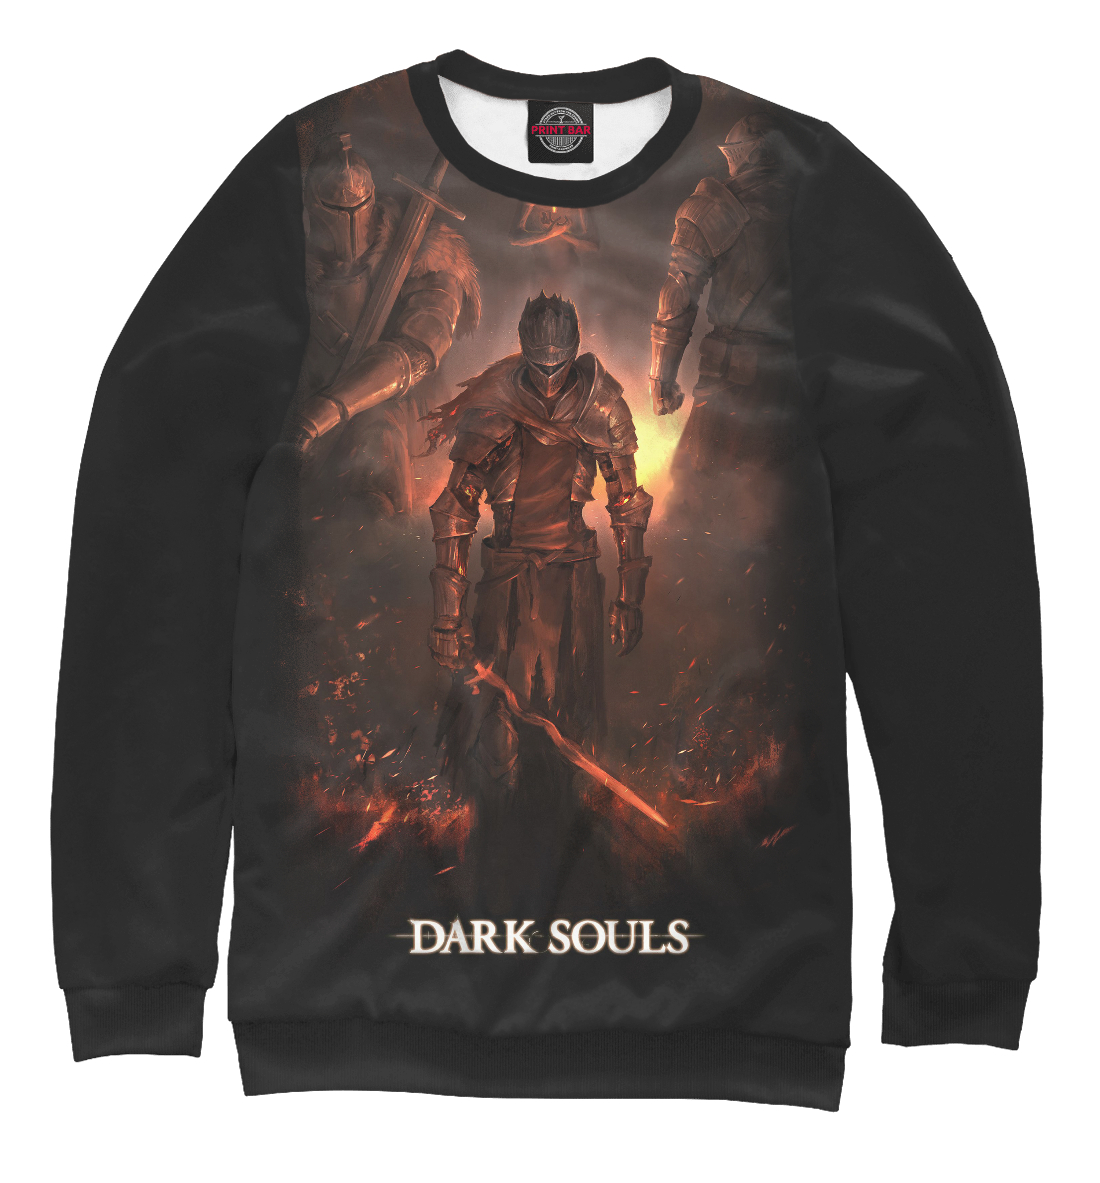 Купить Dark Souls, Printbar, Свитшоты, DKS-514078-swi-1